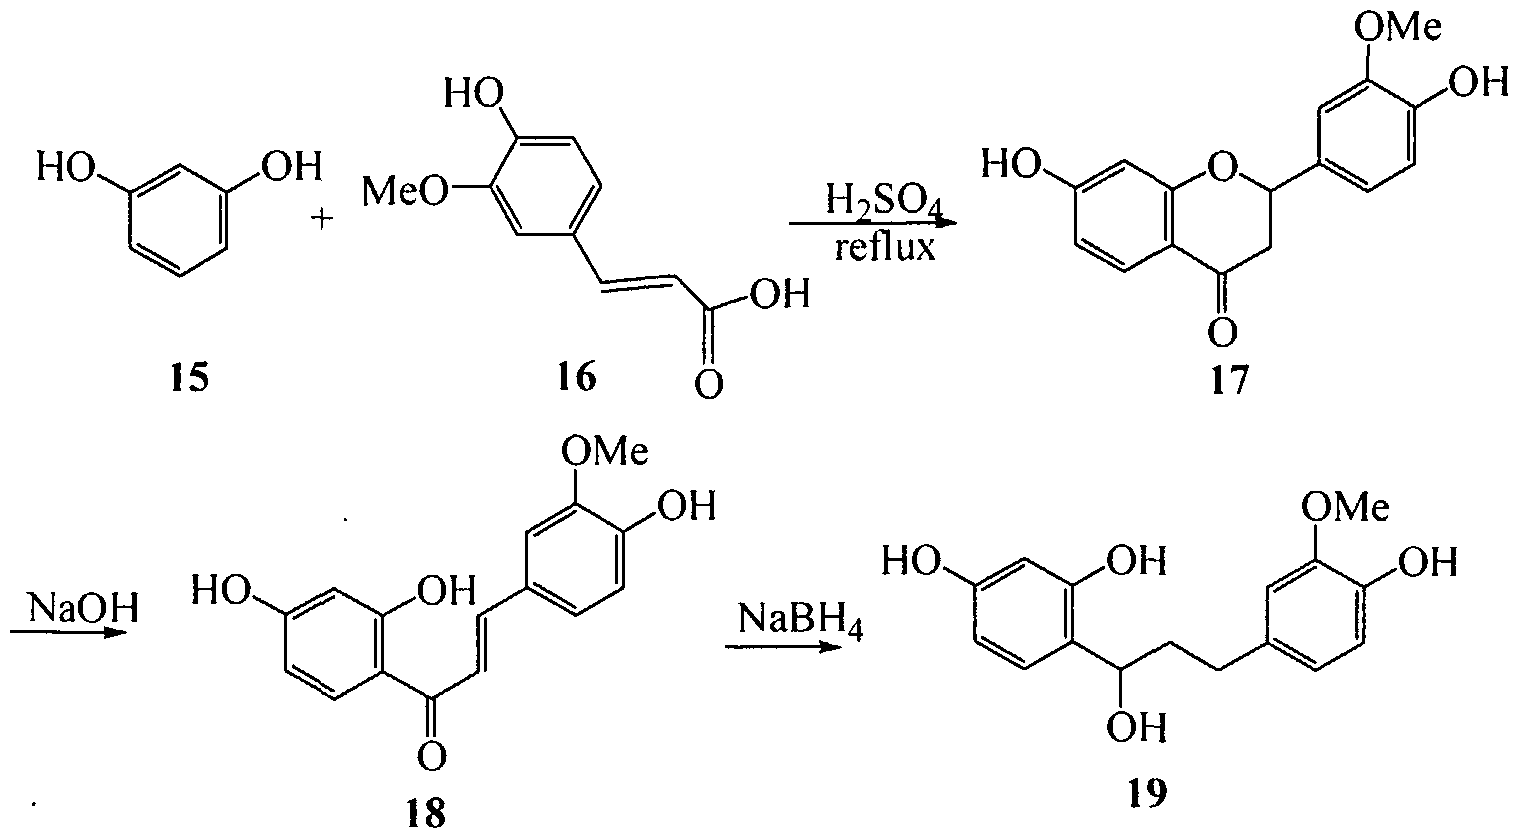 Illustrated Glossary of Organic Chemistry  the enantiomers of 134trihydroxy2butan one  Molecular structure of Derythrulose